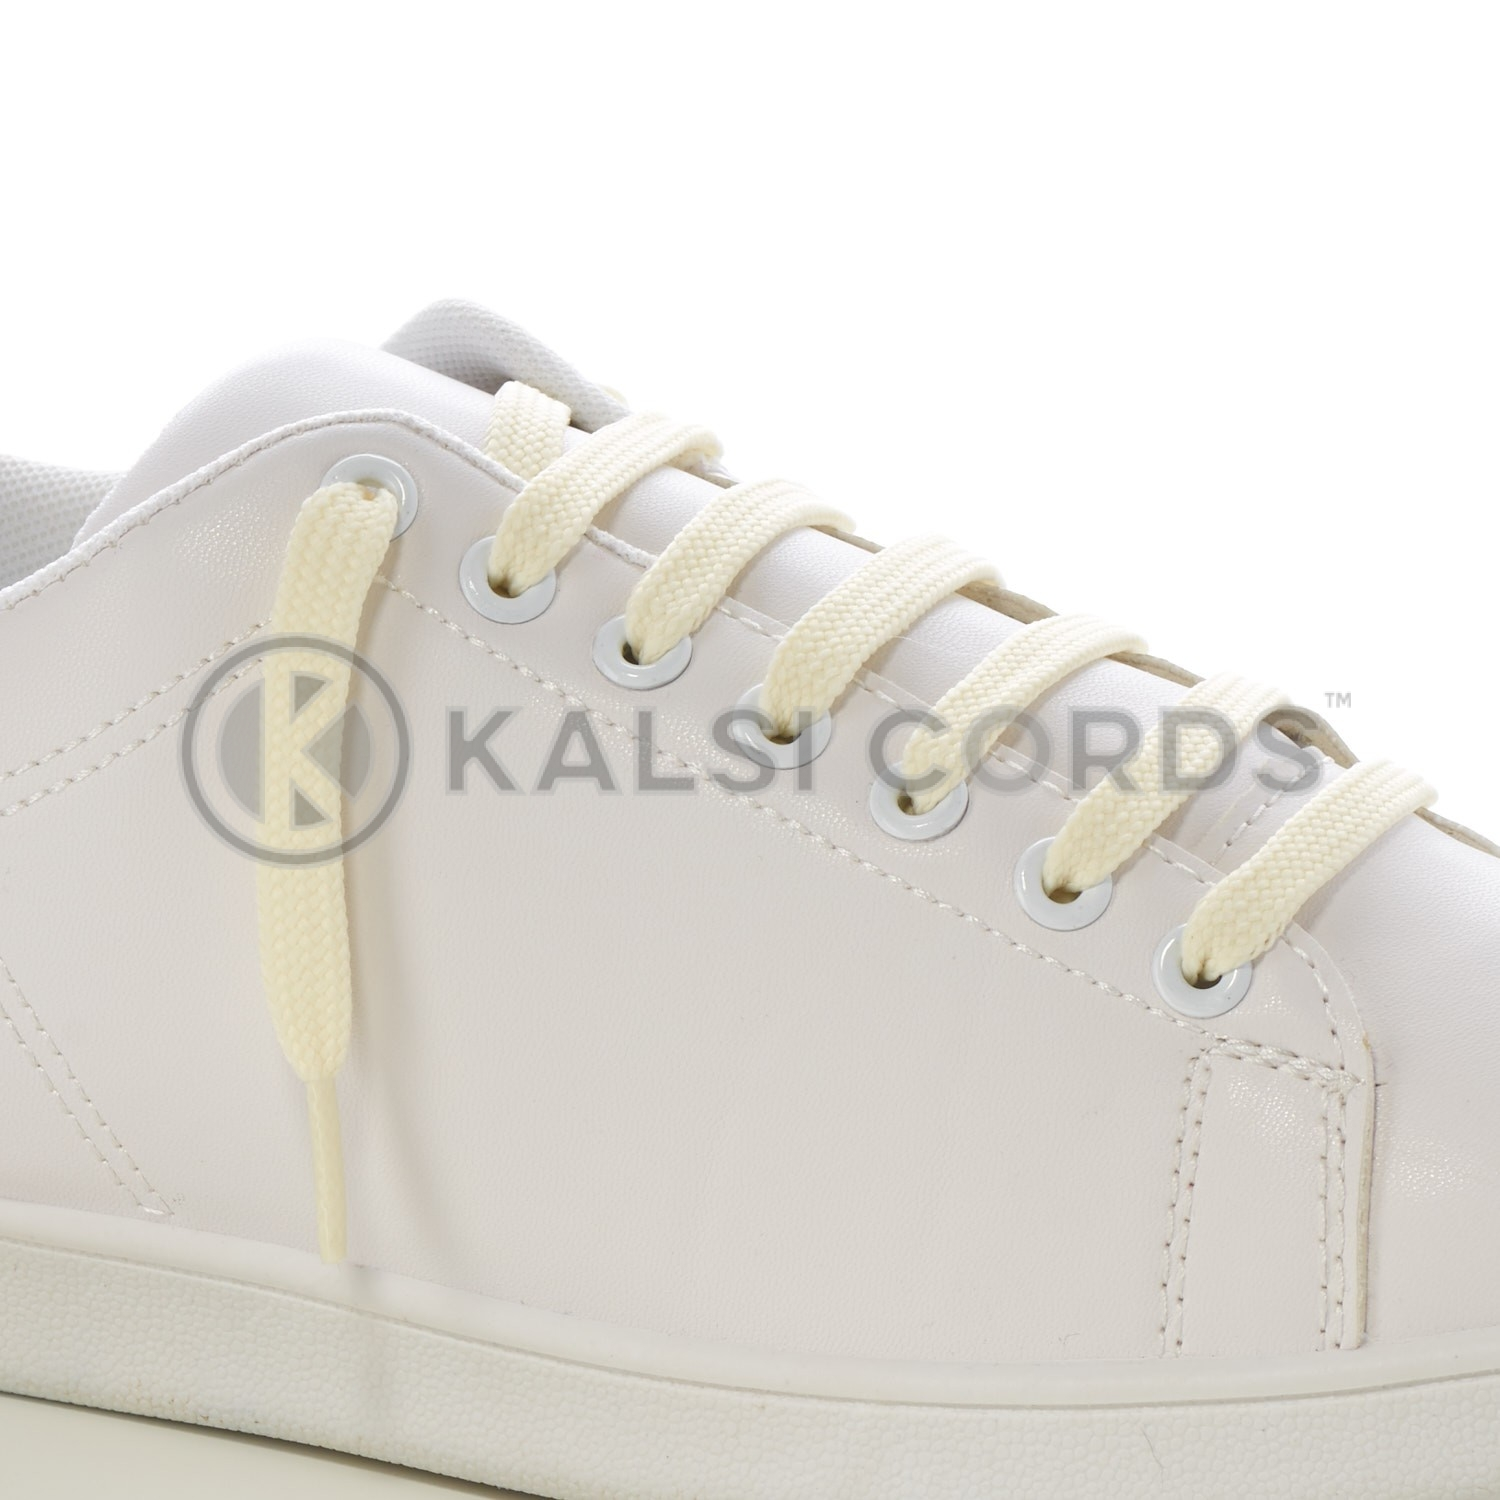 9mm Flat Shoe Laces Tubular Ermine Off White PG904 Sports Trainers Boots Footwear Drawstring Drawcord